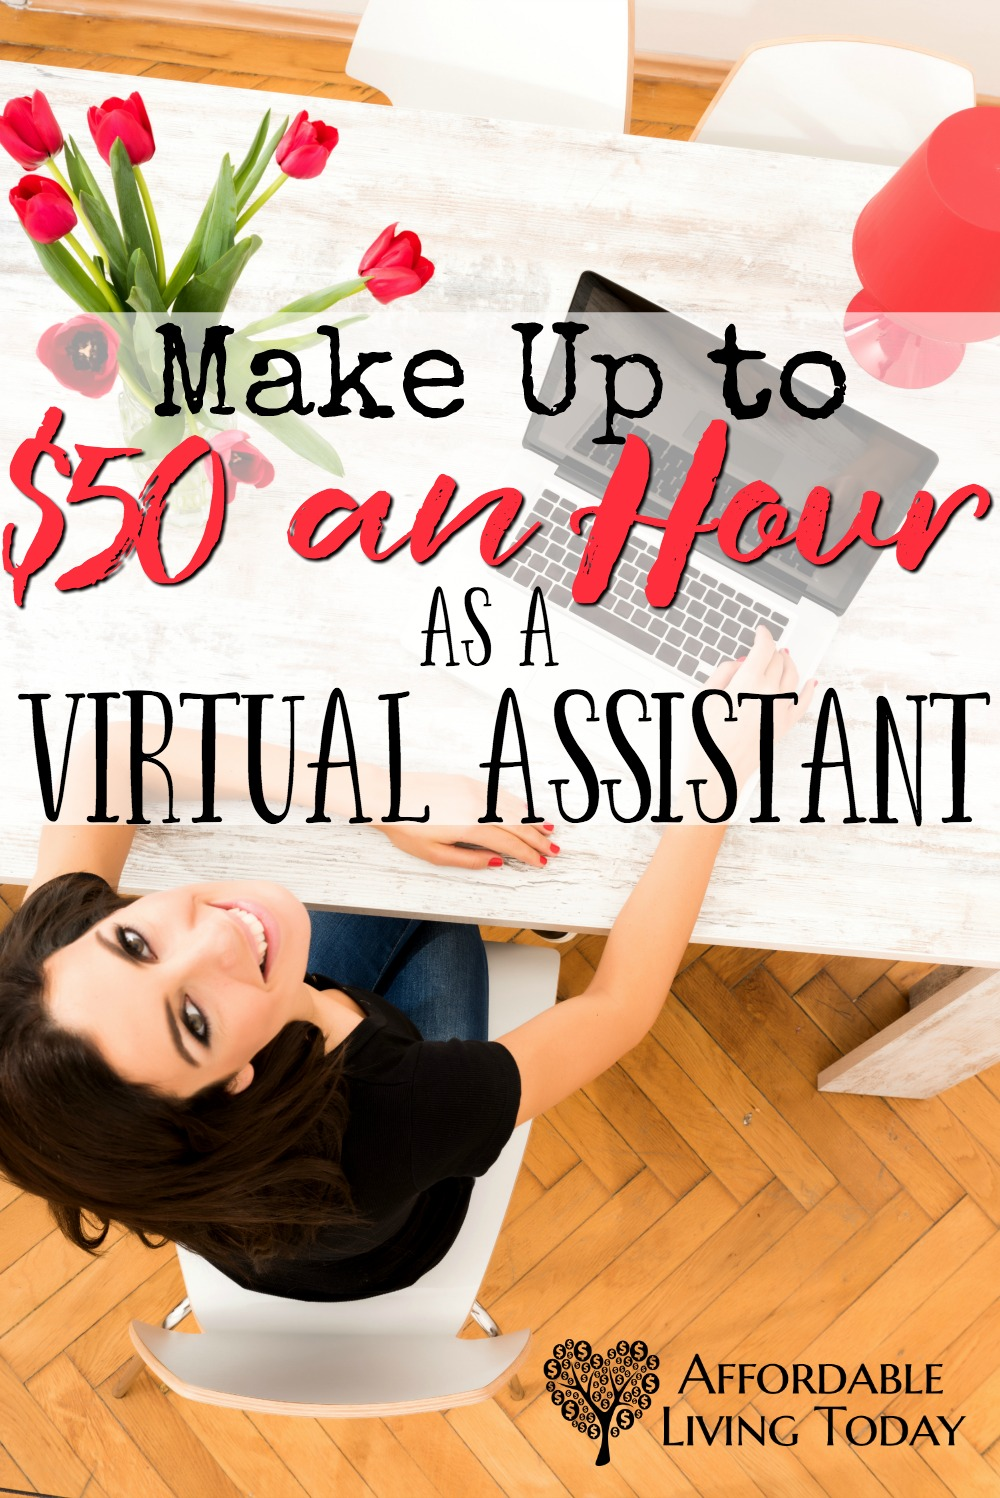 Virtual Assistants can make up to $50 an hour from the comfort of their homes. Learn how.